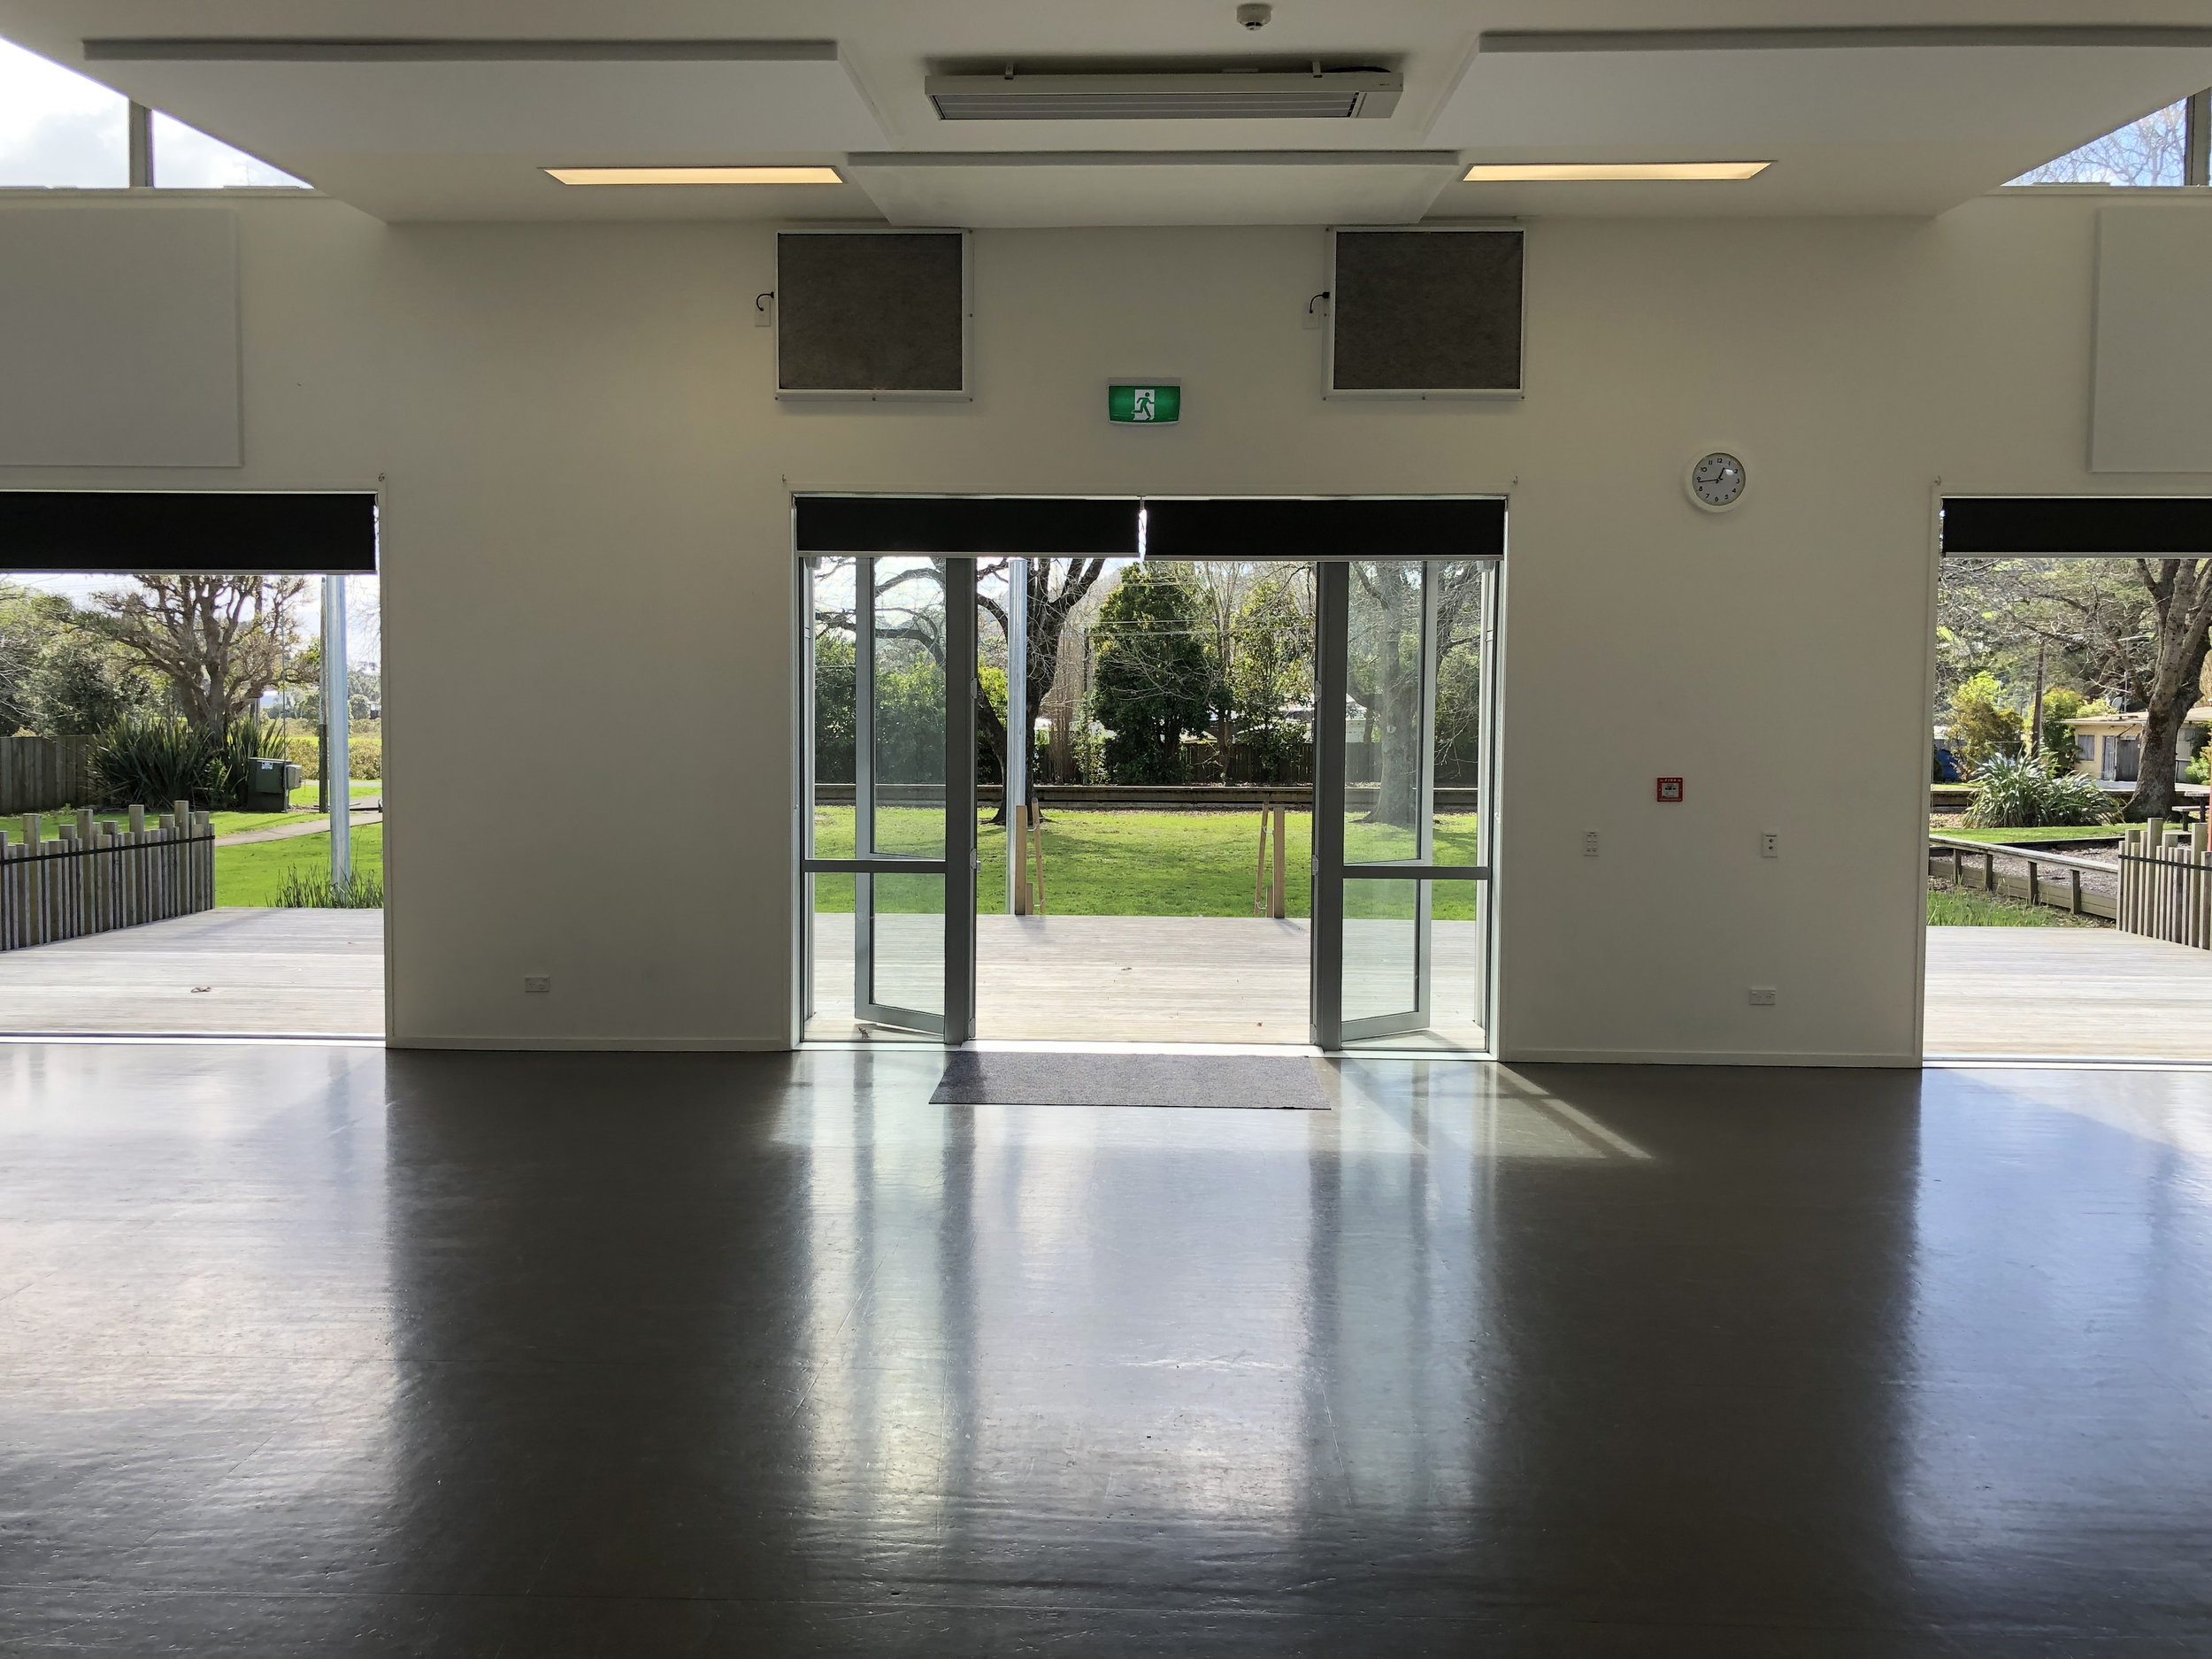 View from internal hall doors looking out to Stillwater Reserve. Click to enlarge image.